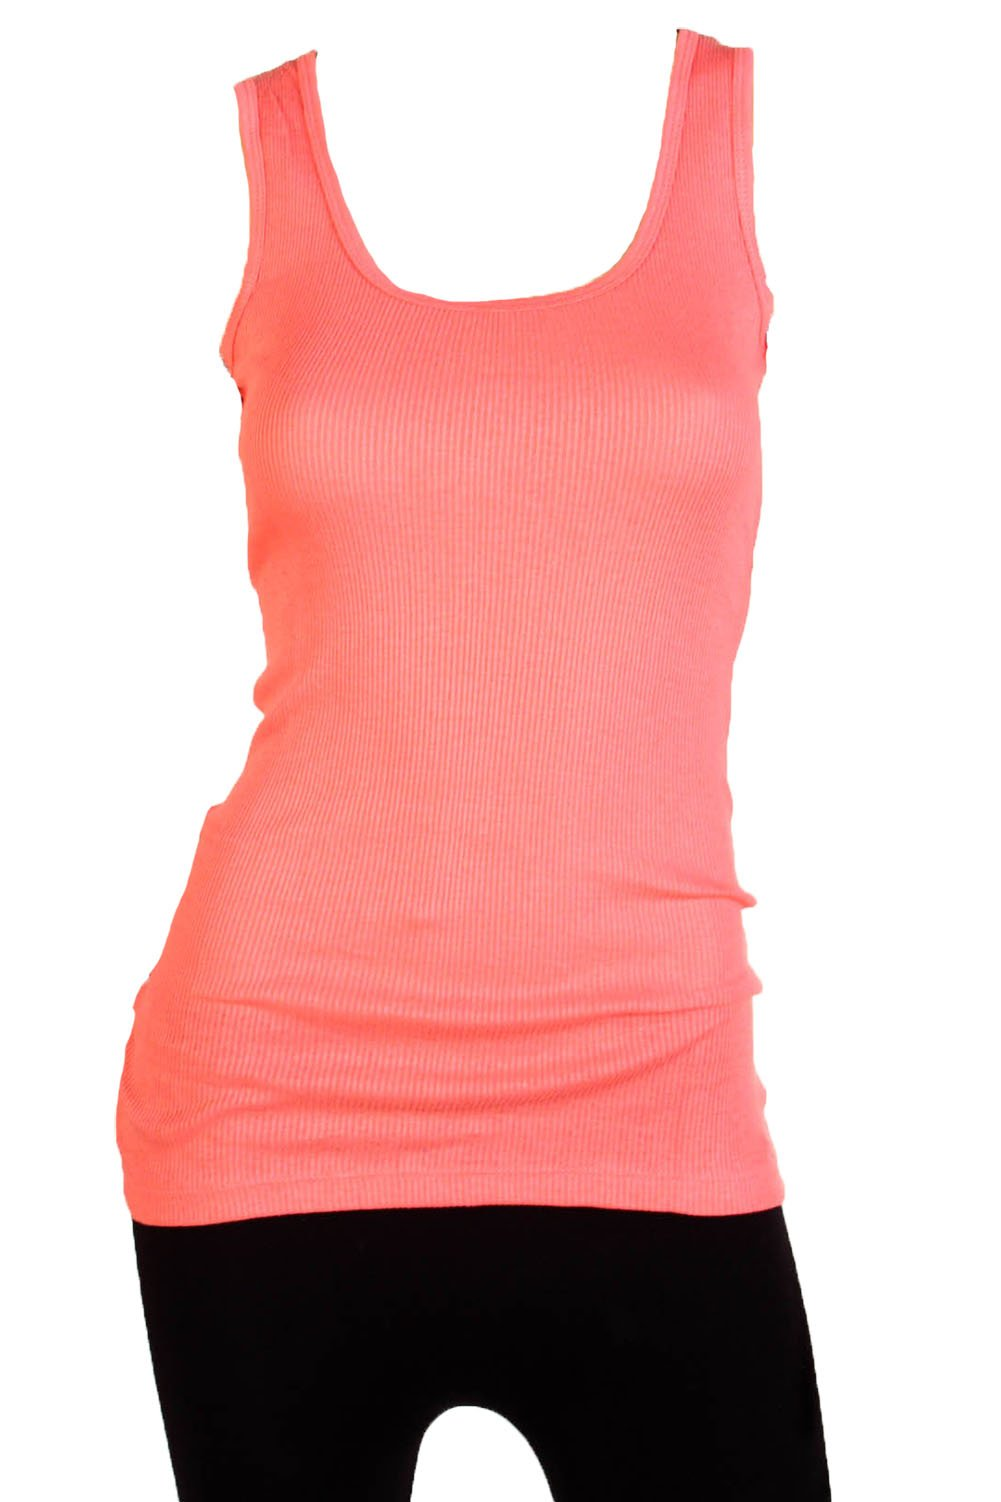 04233e9c4cdd3 Galleon - Sofra Women s Tank Top Cotton Ribbed-XL-Coral